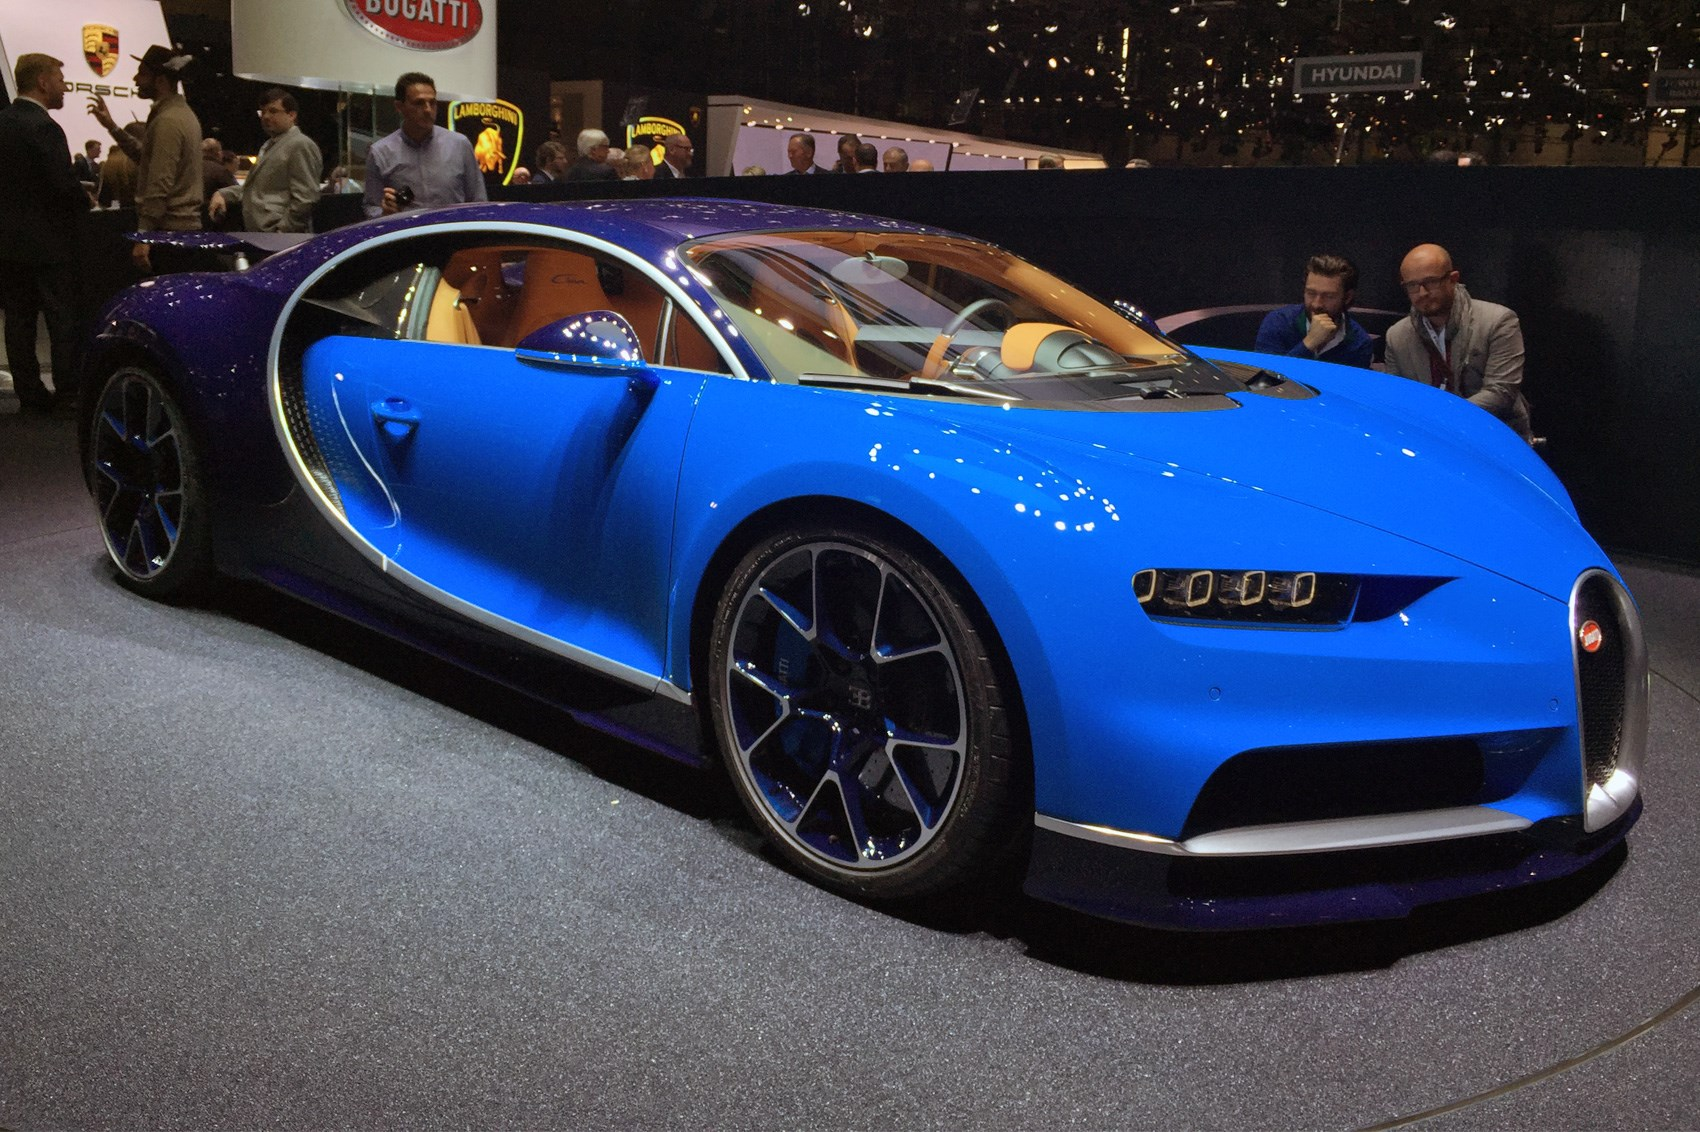 Ultrablogus  Ravishing Bugatti Is Go New Chiron Name Confirmed Here At Geneva  By  With Inspiring Bugatti Chiron Revealed At Geneva  The World Has A New Fastest Production Car With Astounding Wood Grain For Car Interior Also  Mustang Interior In Addition Interior Led Lights And Nissan Xterra Interior Accessories As Well As Cerato  Interior Additionally Interior Door Handles From Carmagazinecouk With Ultrablogus  Inspiring Bugatti Is Go New Chiron Name Confirmed Here At Geneva  By  With Astounding Bugatti Chiron Revealed At Geneva  The World Has A New Fastest Production Car And Ravishing Wood Grain For Car Interior Also  Mustang Interior In Addition Interior Led Lights From Carmagazinecouk